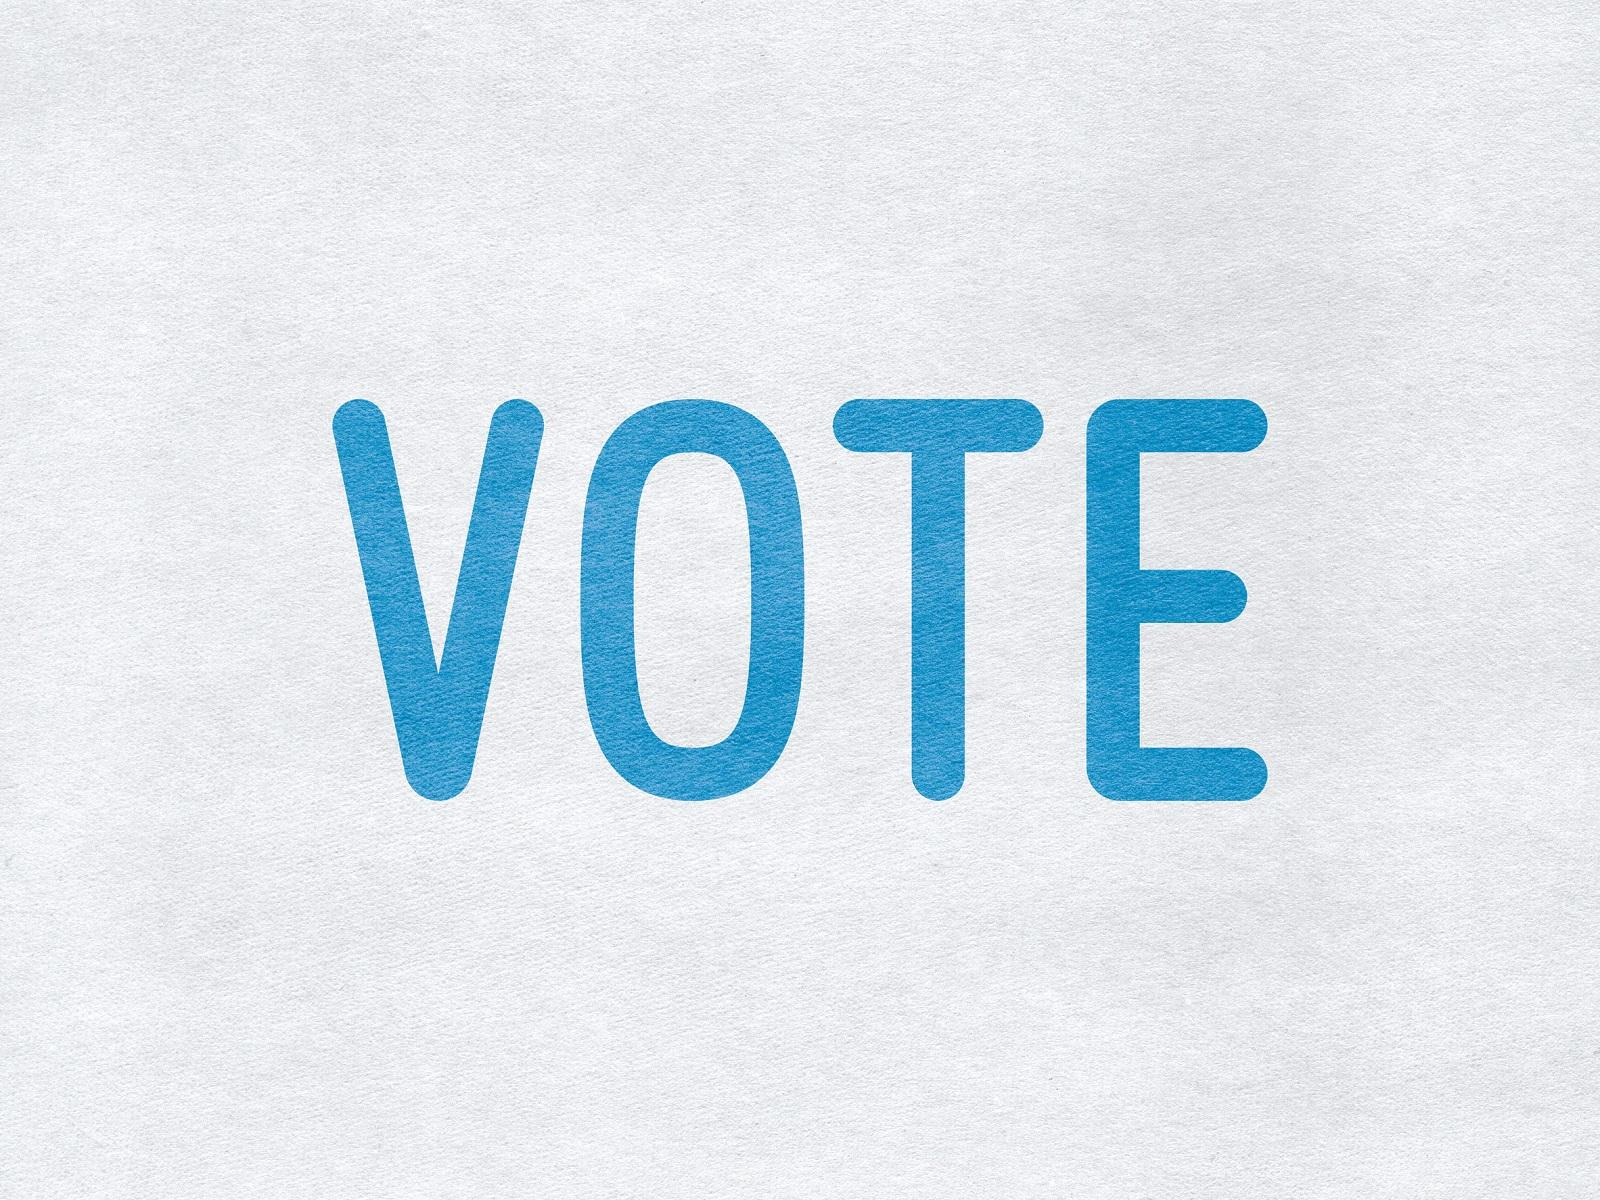 Vote - word on paper background.